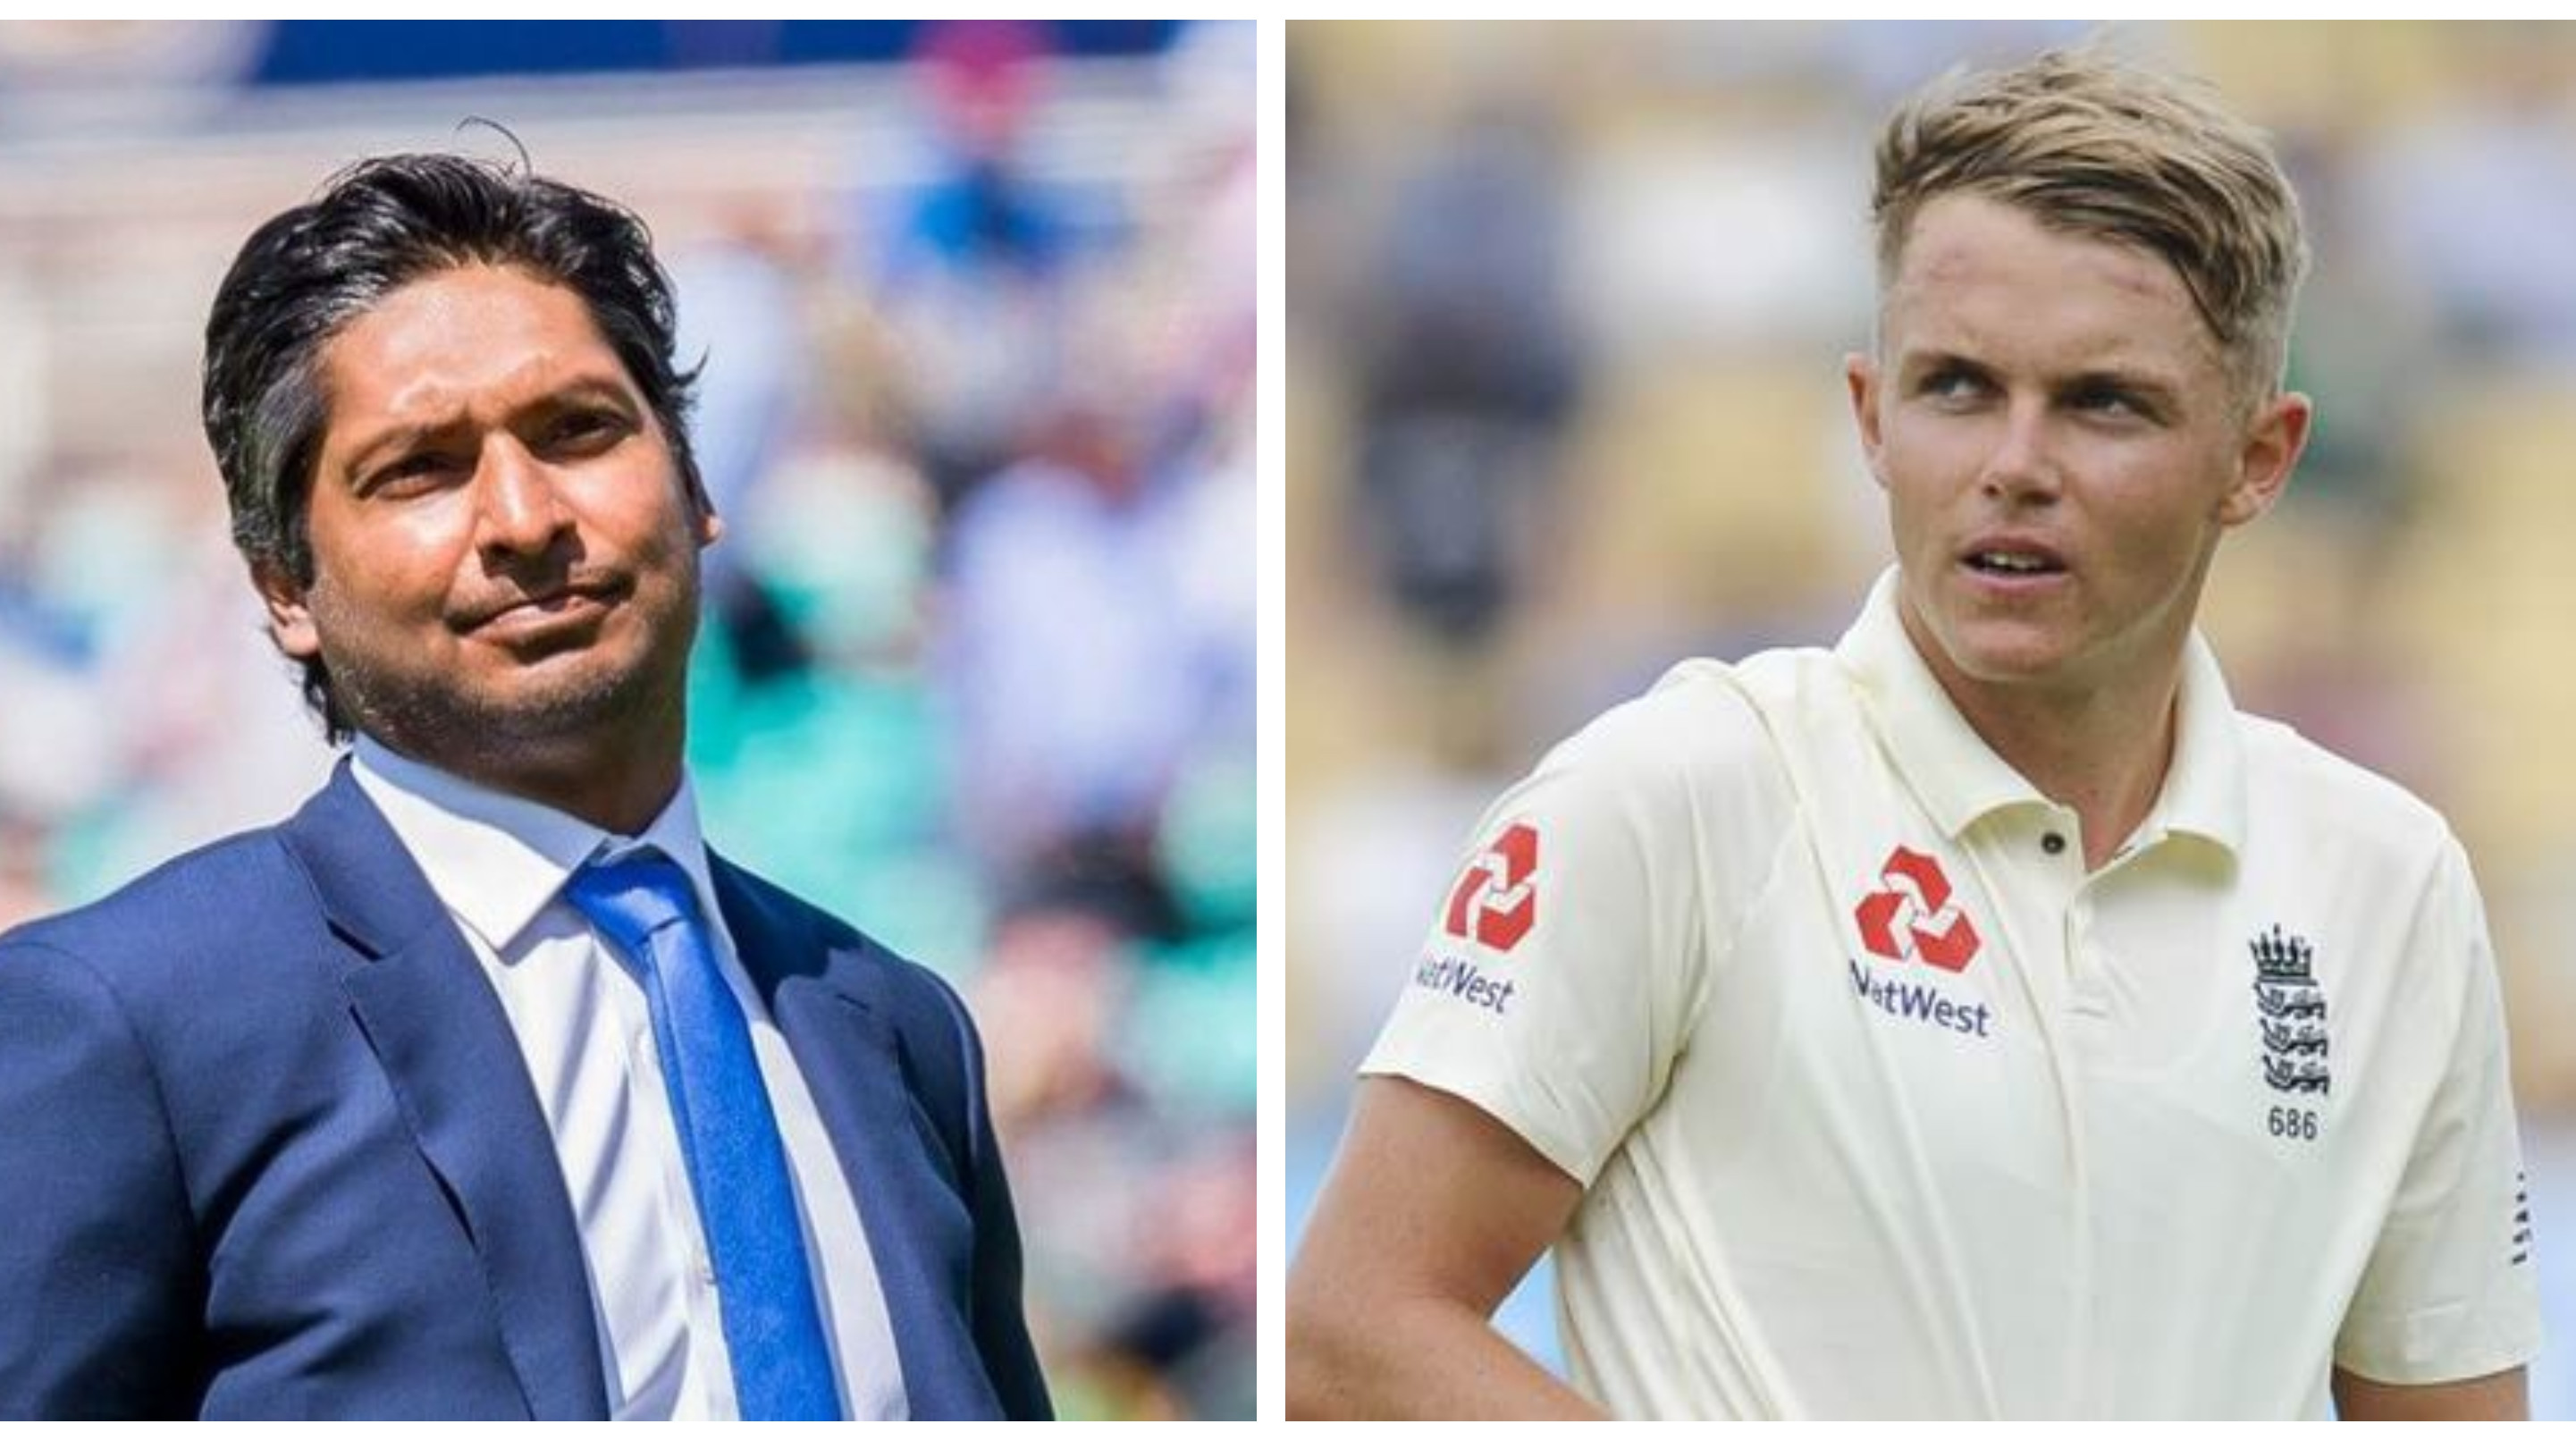 ENG vs IND 2018: Sam Curran is someone who can excel under pressure, says Kumar Sangakkara